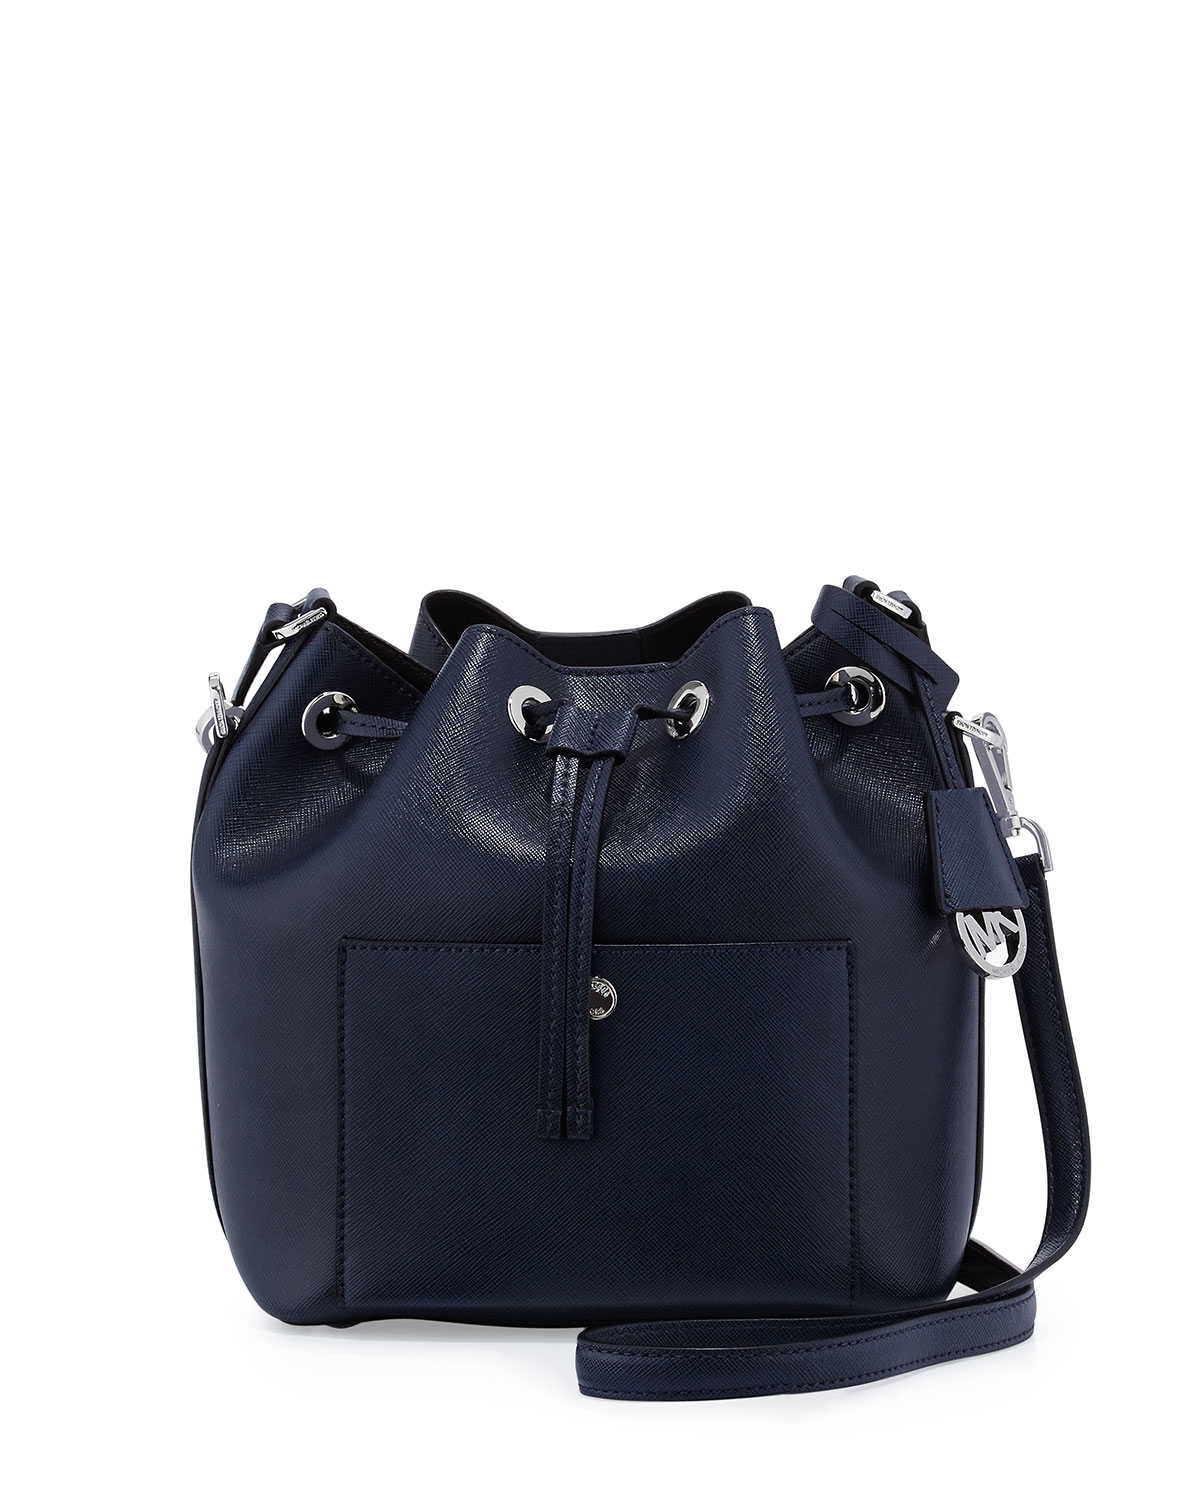 Lyst - MICHAEL Michael Kors Greenwich Medium Bucket Bag in Blue c5f435d7c8855